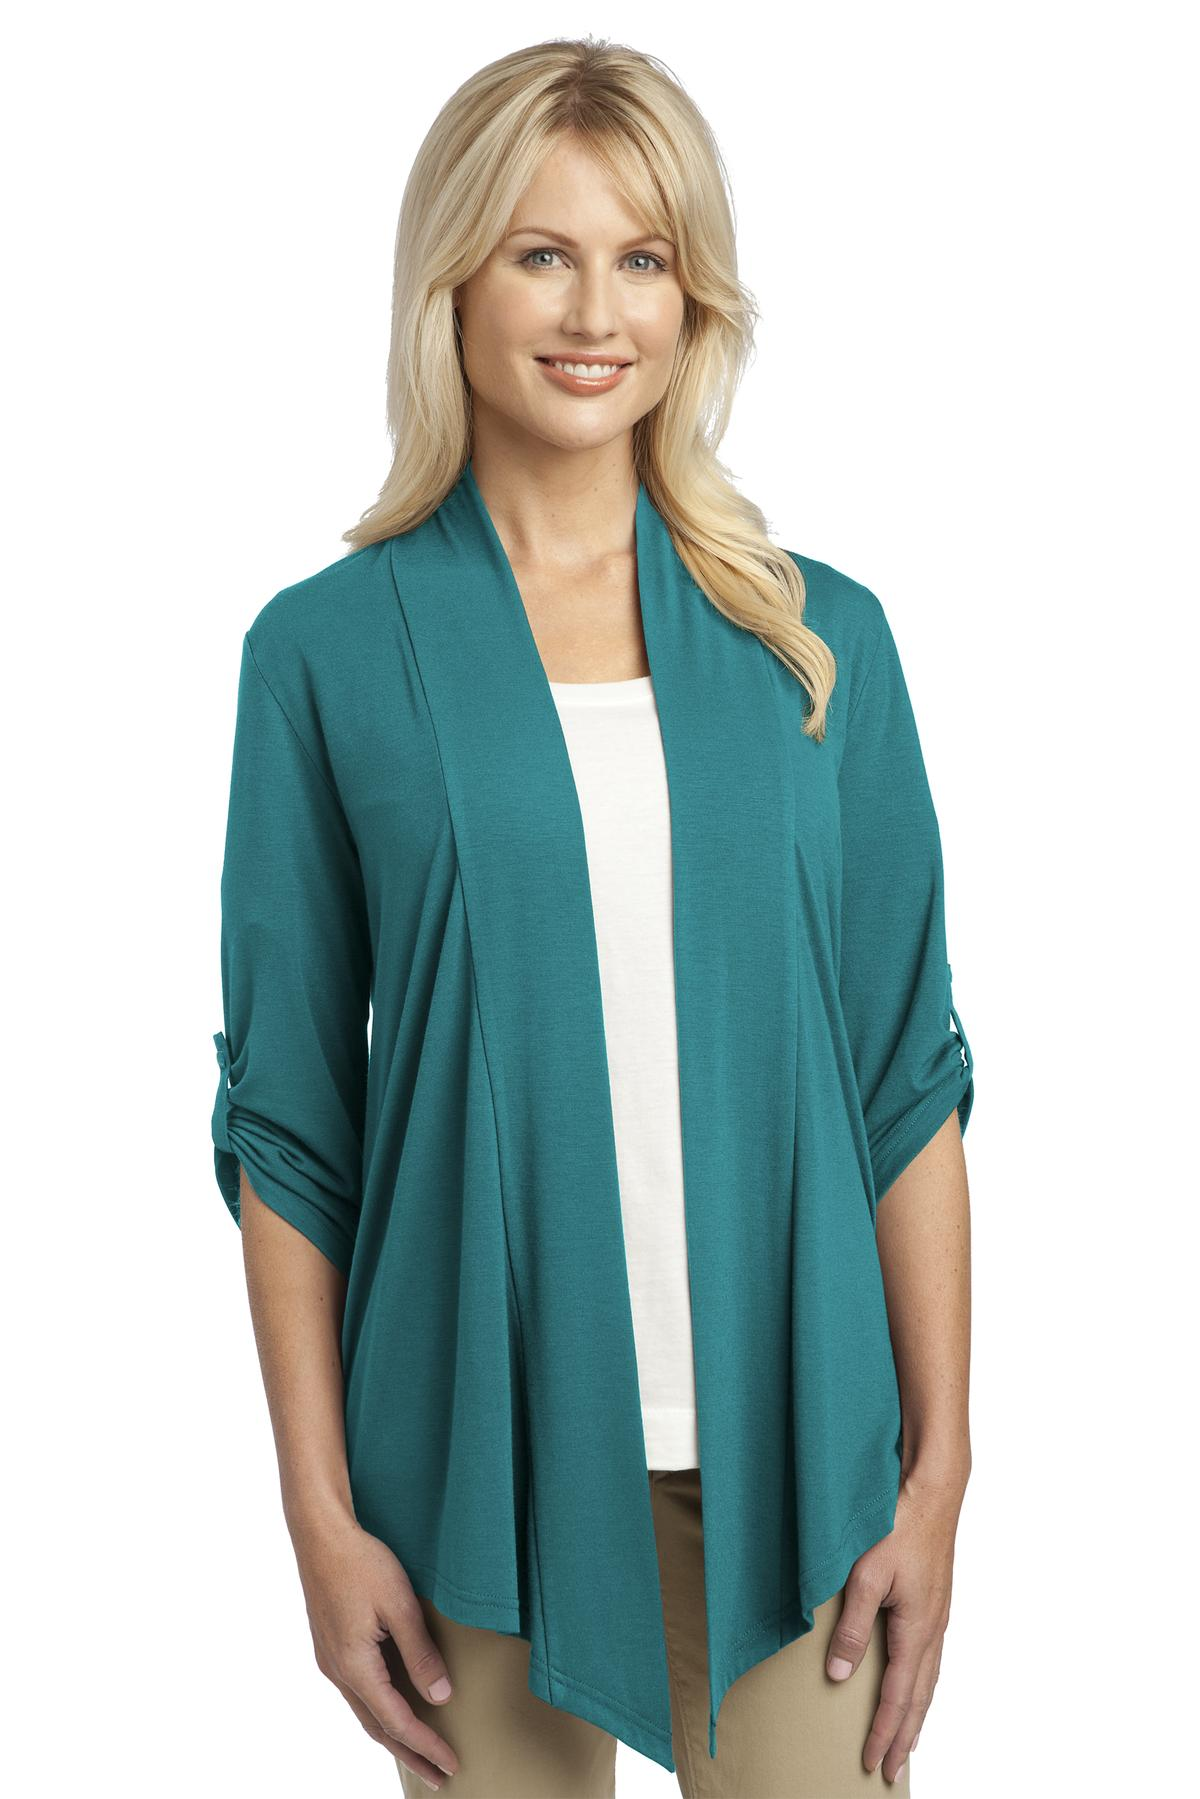 Port Authority ®  Ladies Concept Shrug. L543 - Teal Green